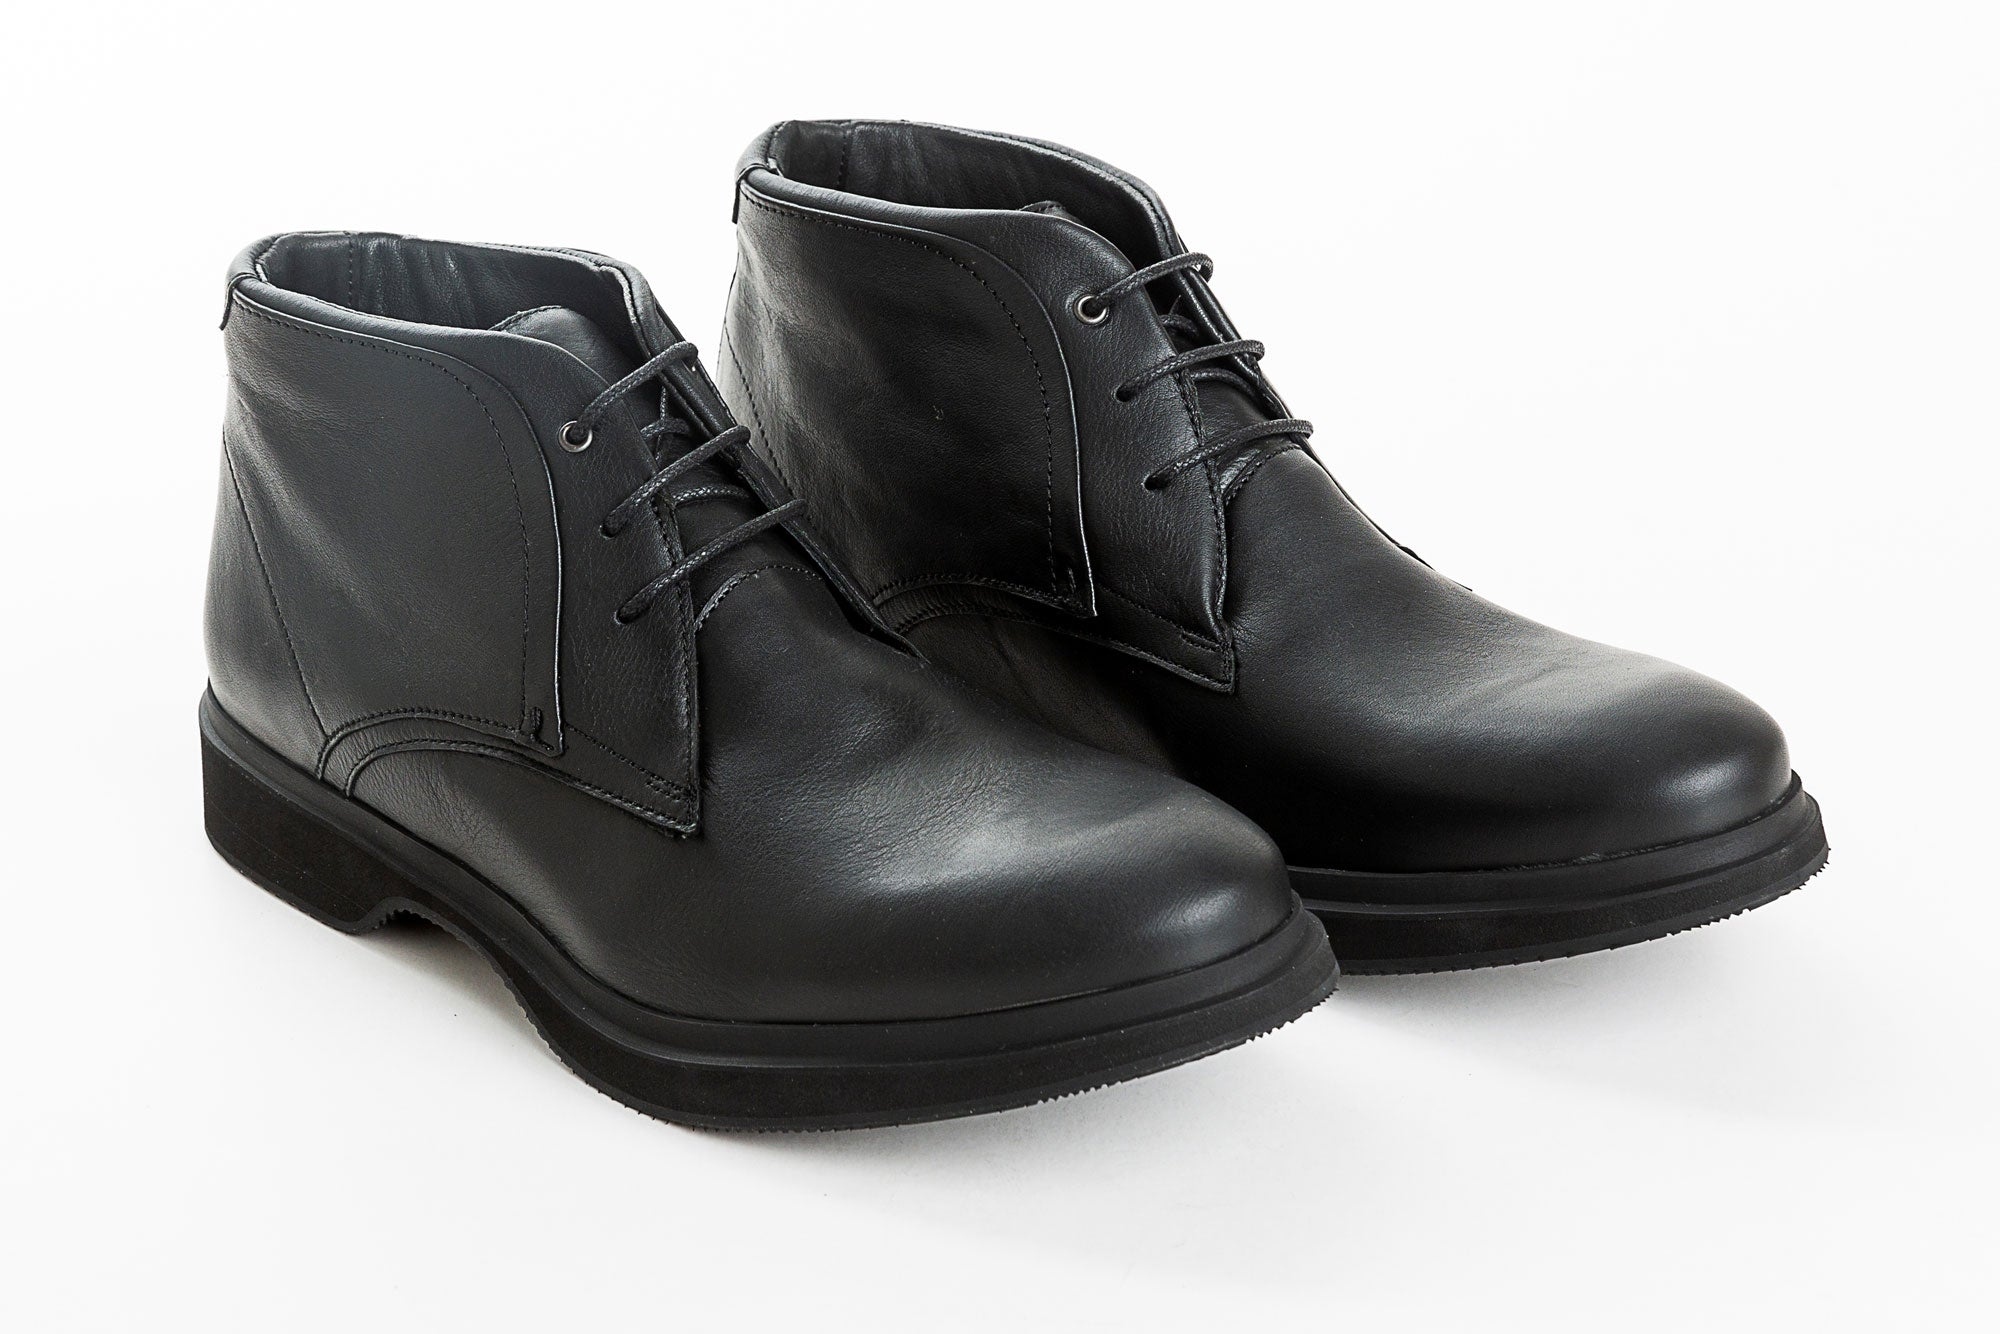 Most Comfortable Mens Boots For Walking